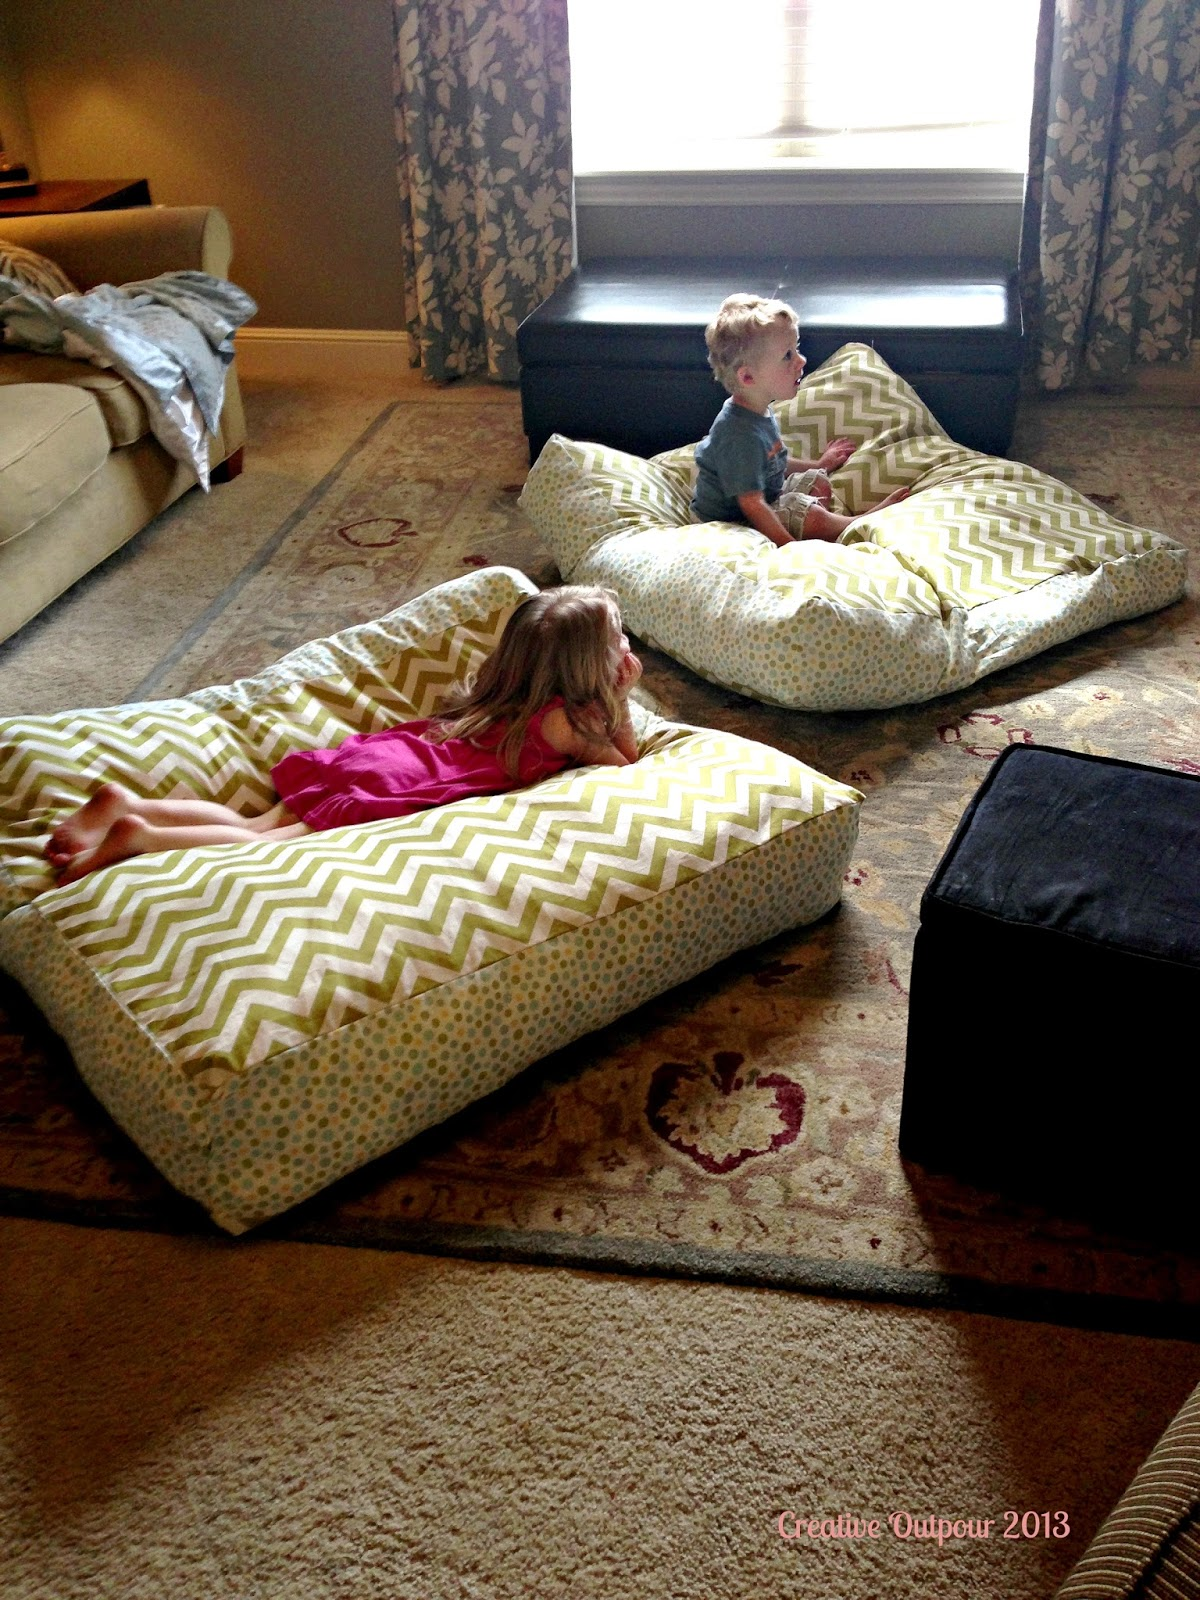 Oversized Pillows For The Floor : Creative Outpour: Floor Pillows Completed!